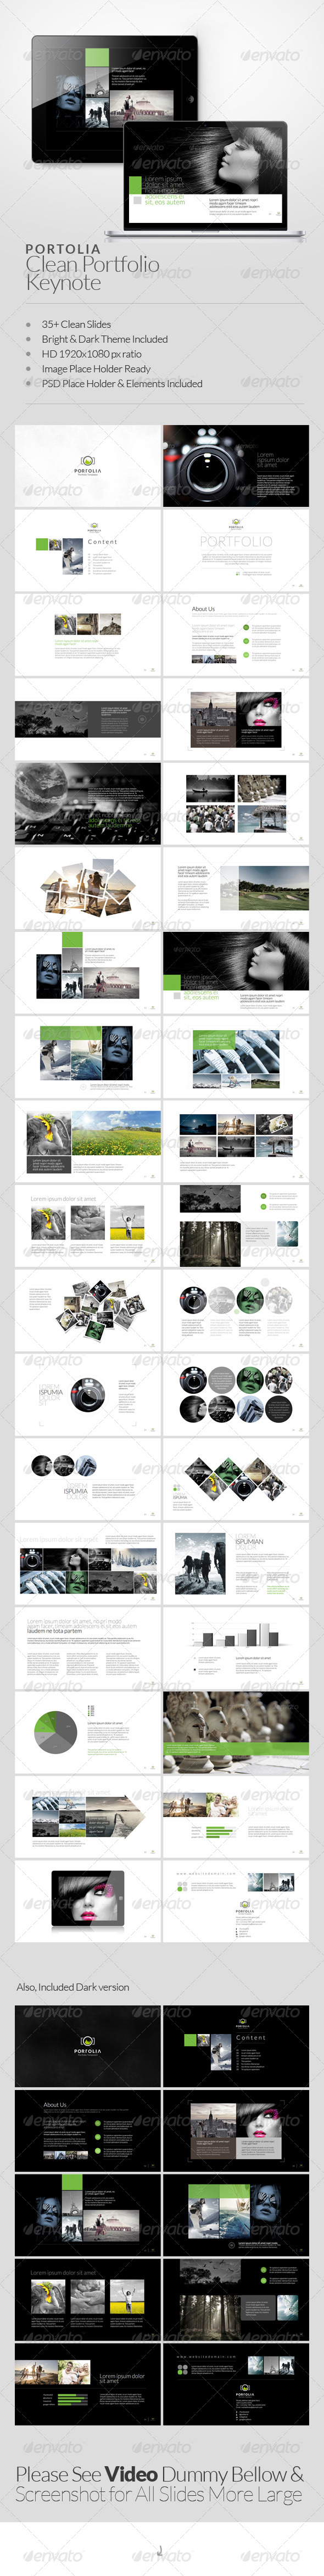 GraphicRiver Portolia Multipurpose Clean Portfolio Keynote 6452302